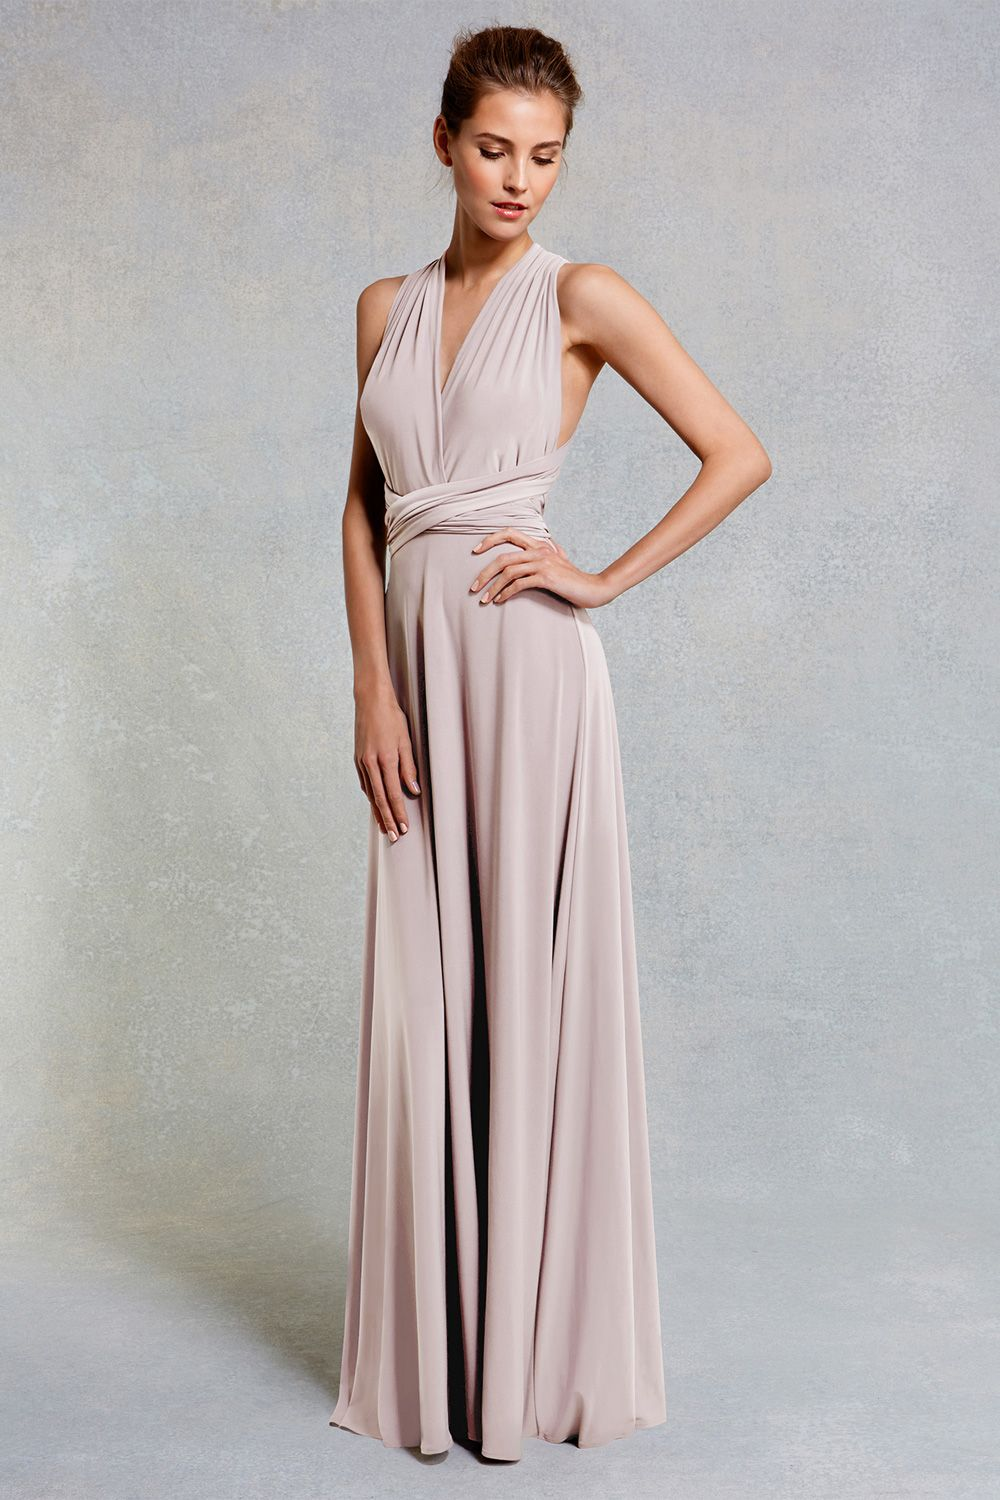 Corwin multi tie dress 2016 bridesmaid collections pinterest corwin multi tie dress ombrellifo Choice Image